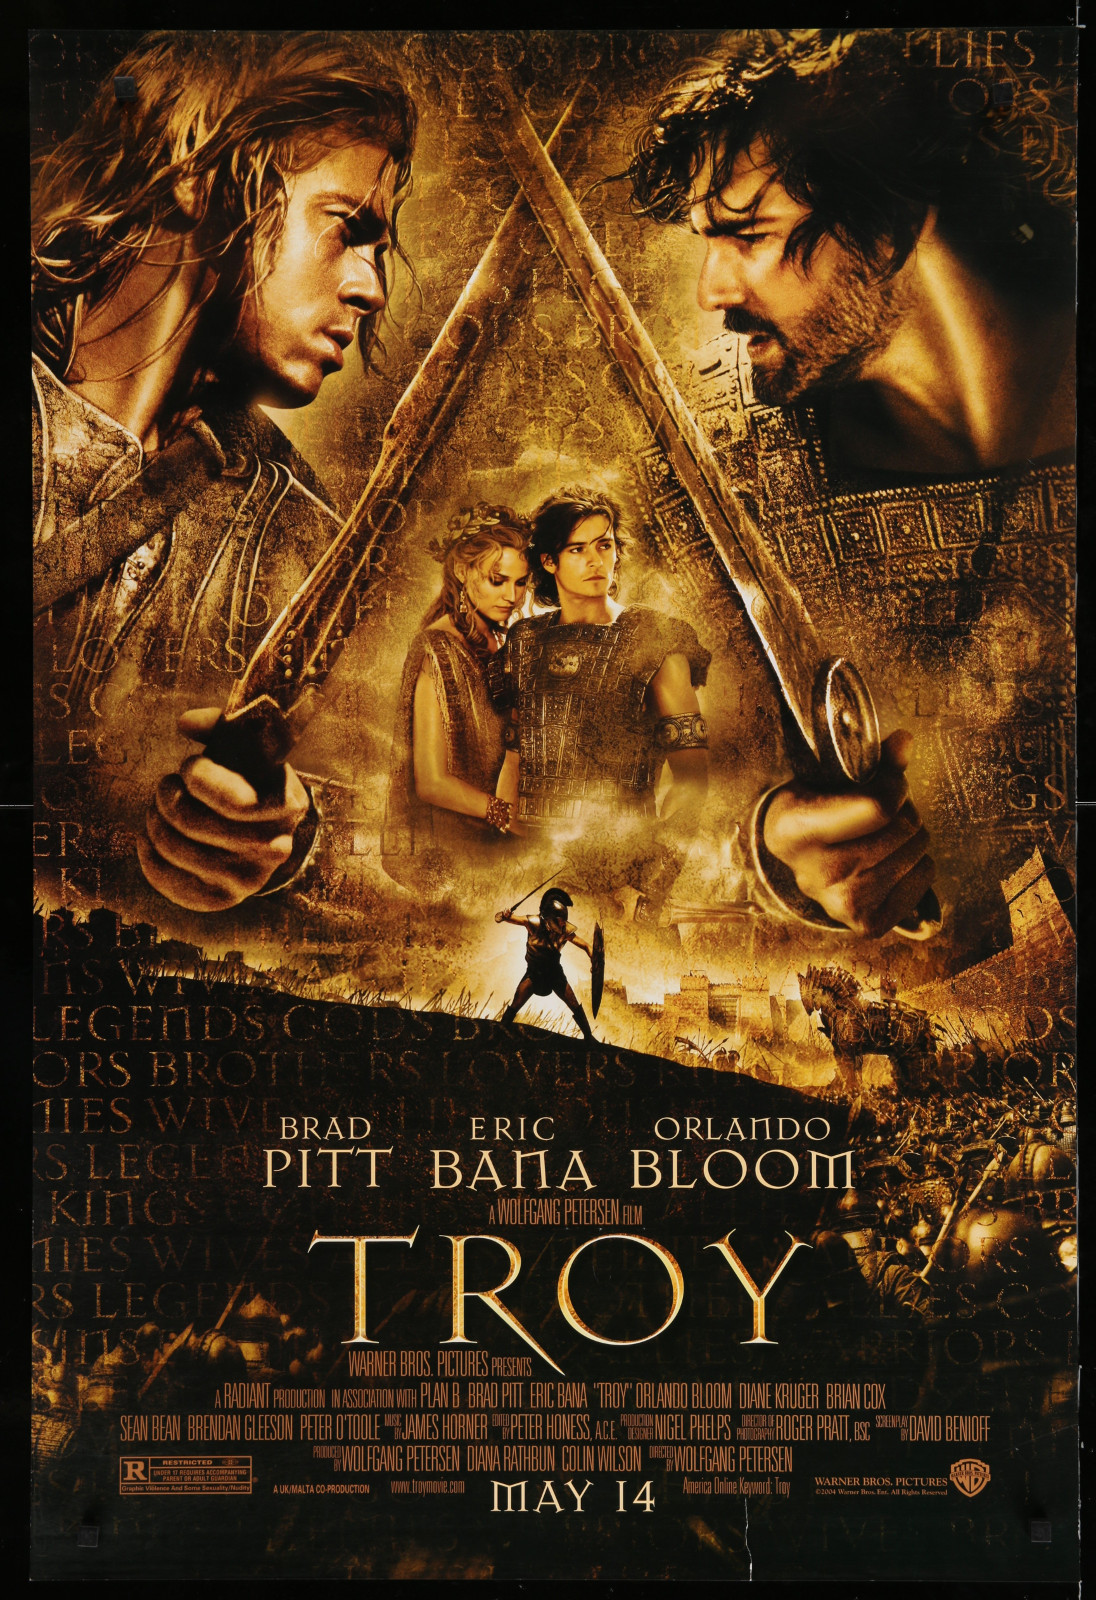 Troy 2A366 A Part Of A Lot 29 Unfolded Double-Sided 27X40 One-Sheets '90S-00S Great Movie Images!